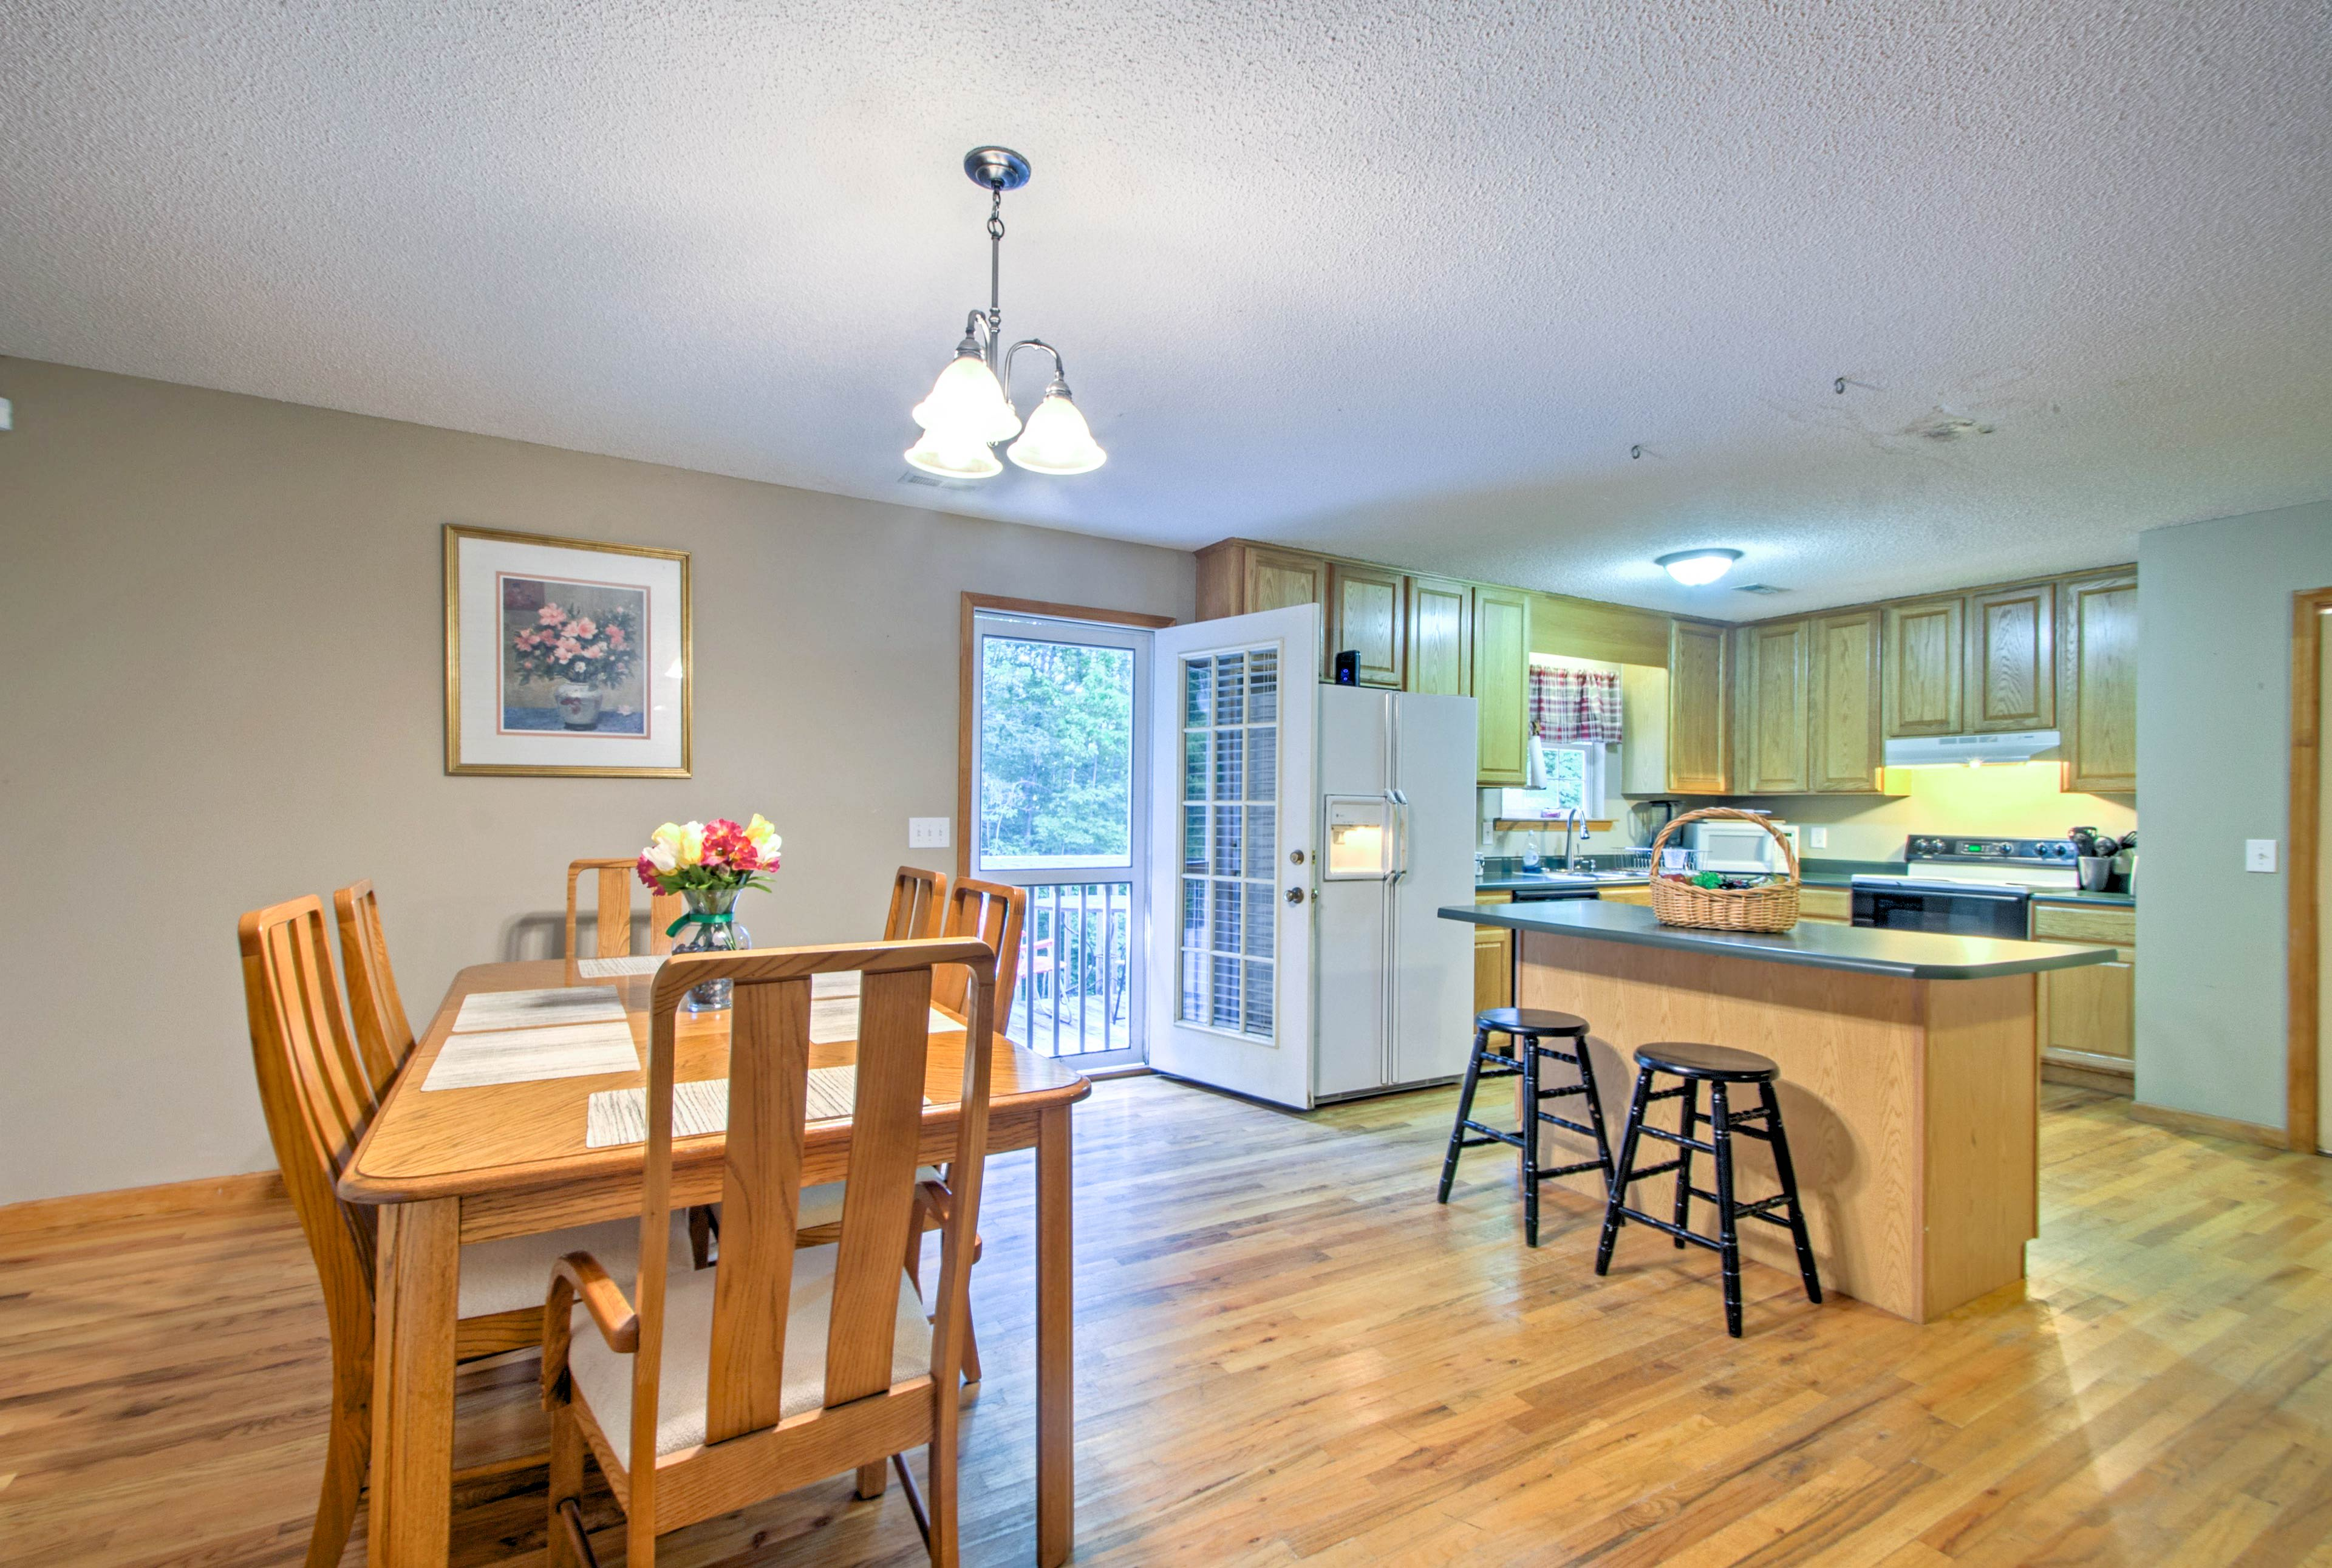 A 6-person wooden table and breakfast bar provide dining options.